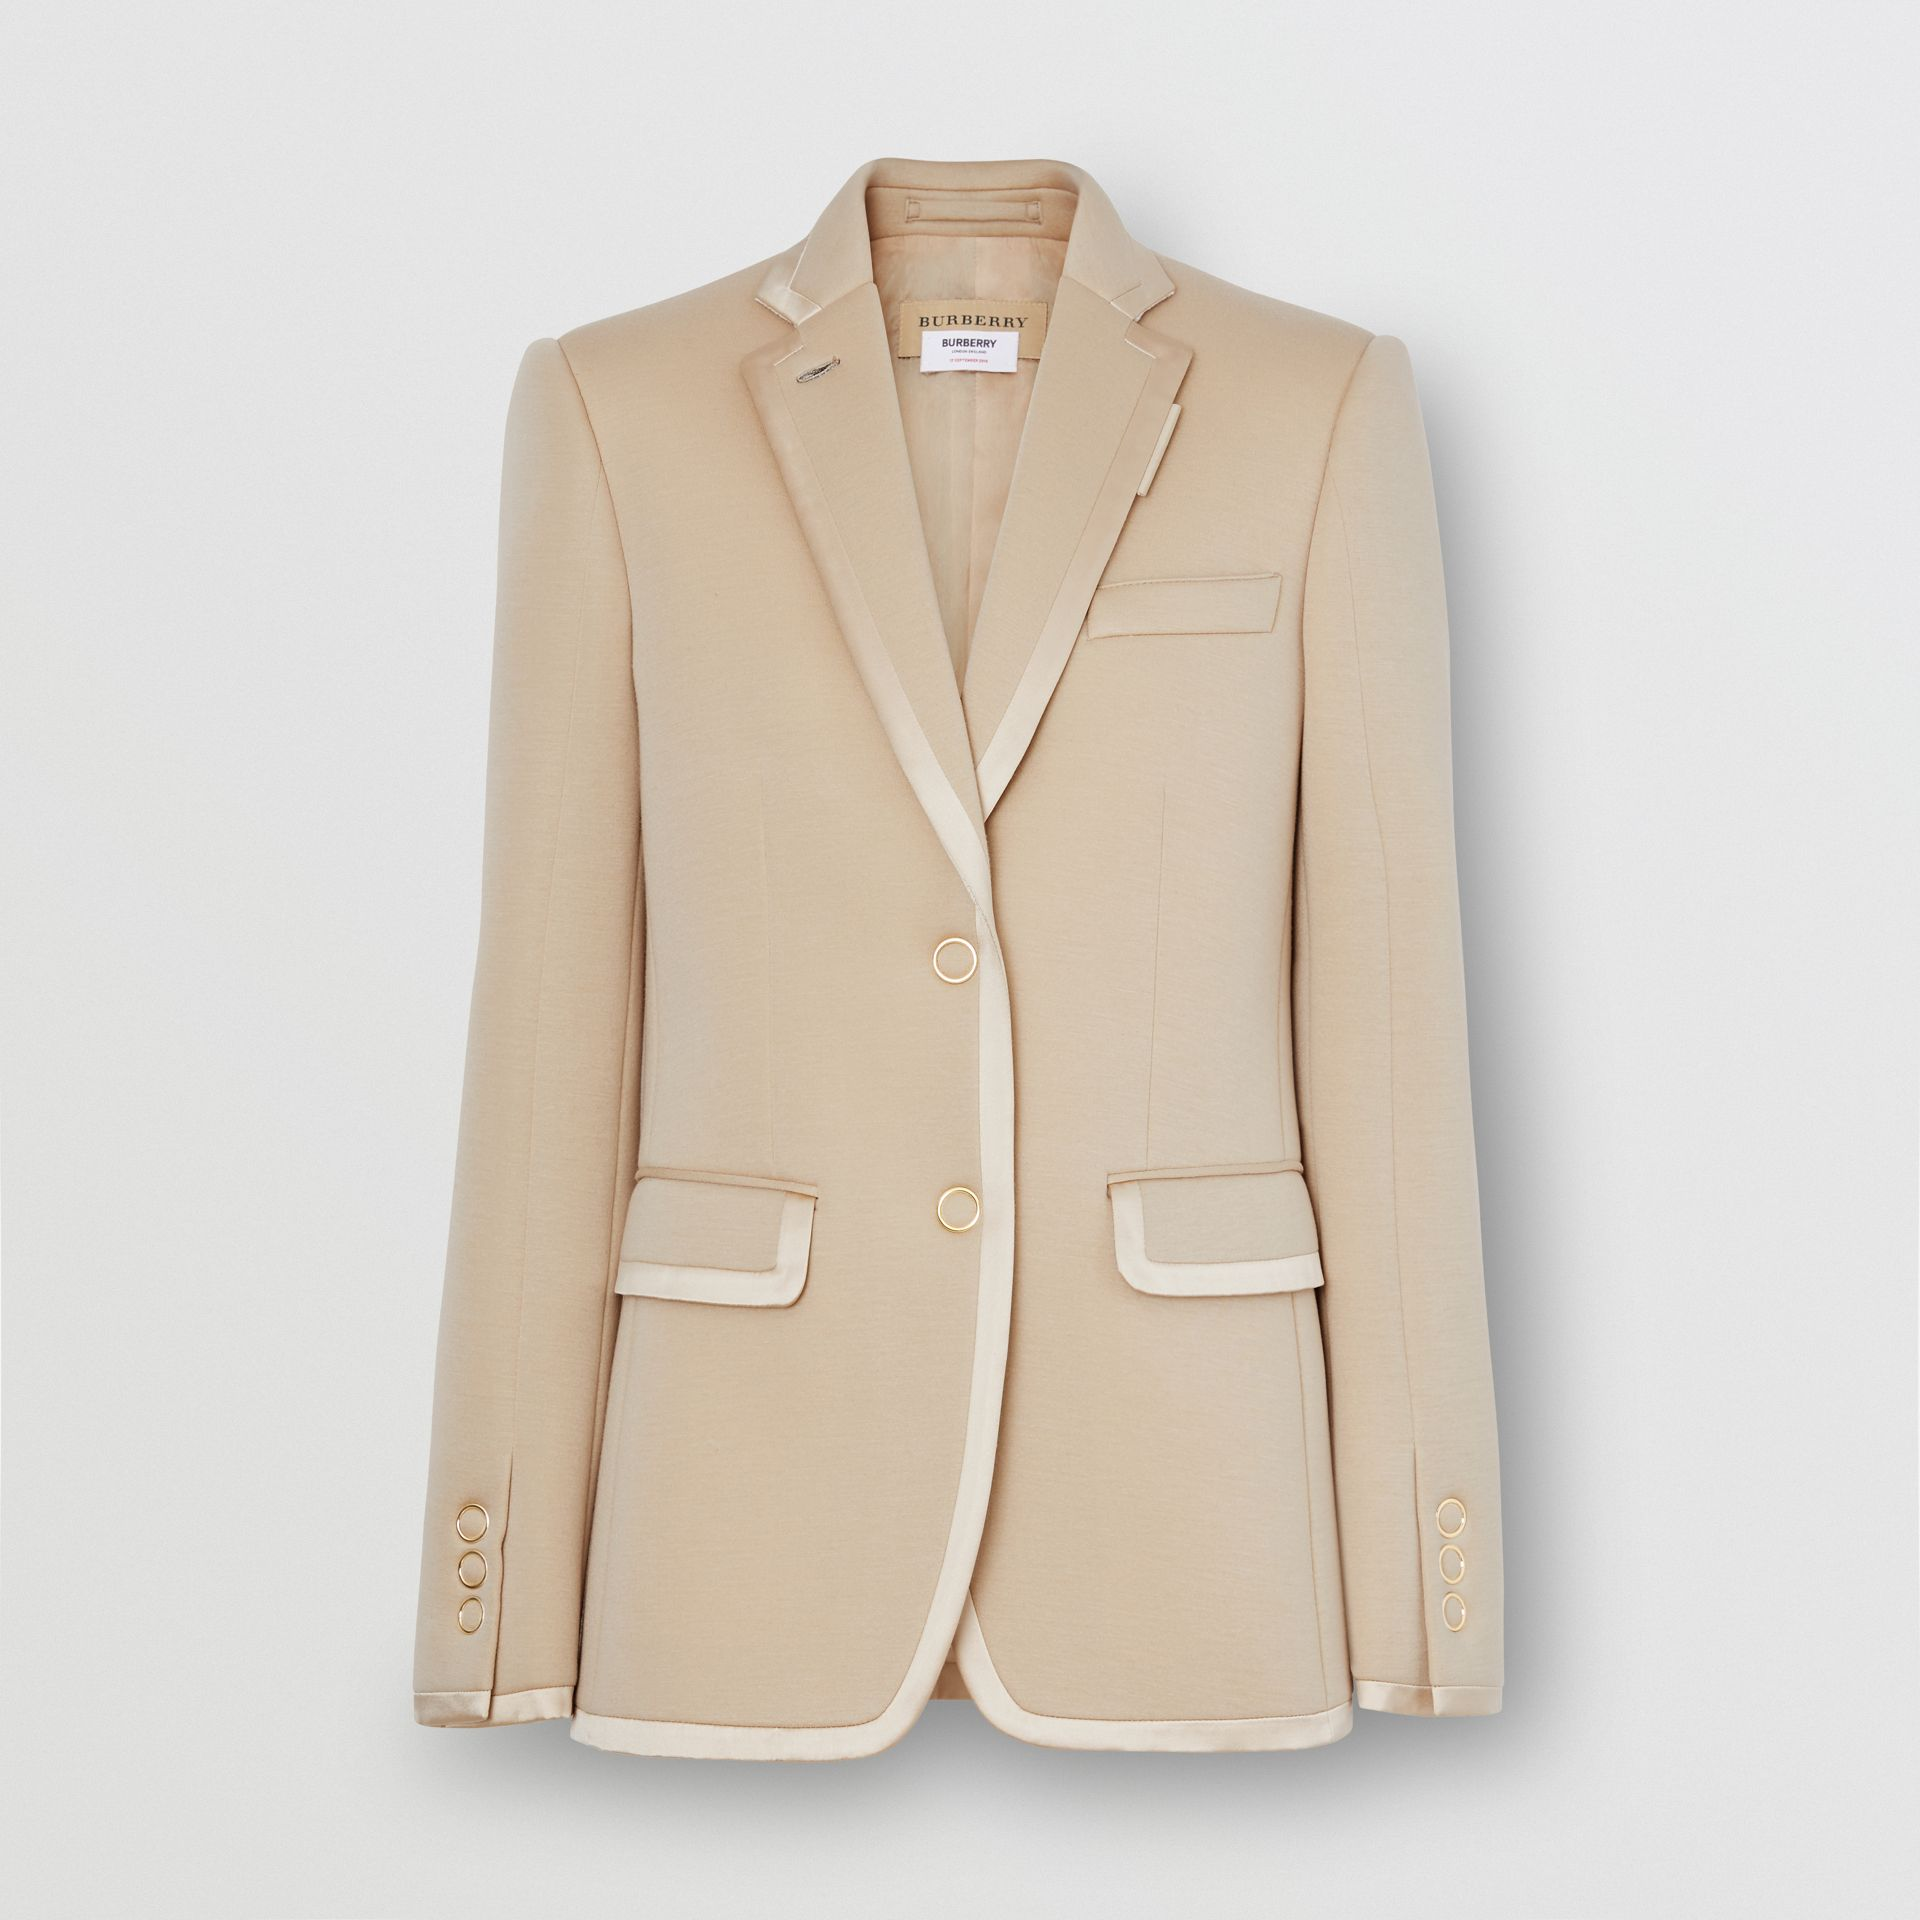 Silk Trim Neoprene Blazer in Teddy Beige - Women | Burberry Australia - gallery image 3